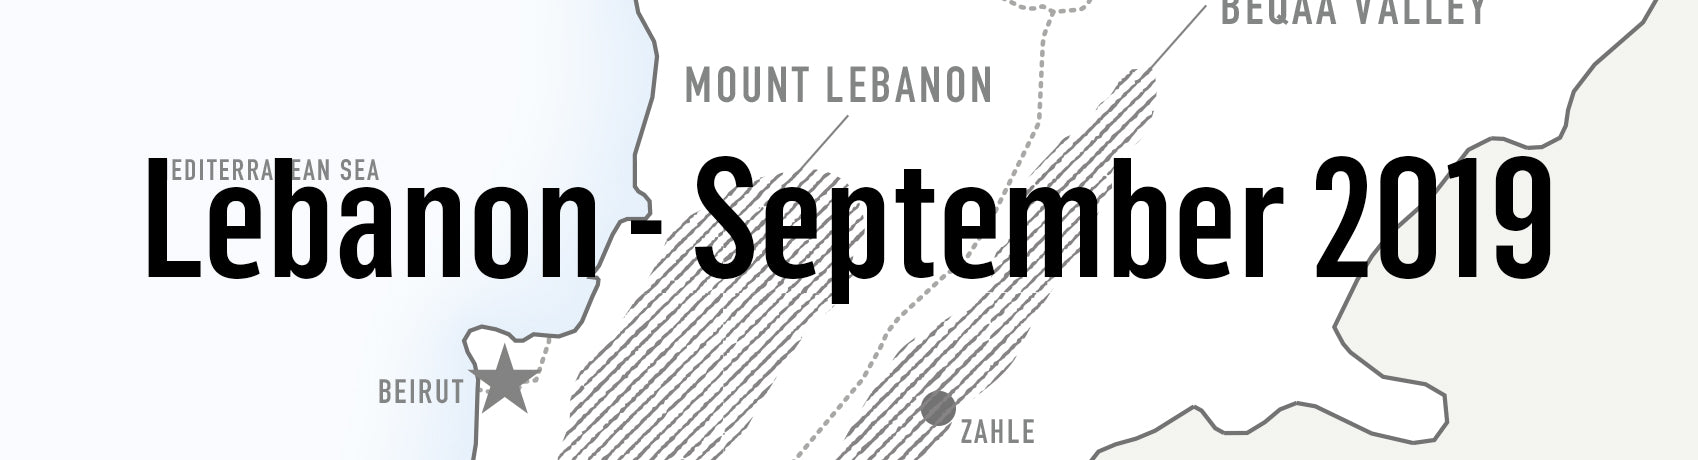 Lebanon - September 2019